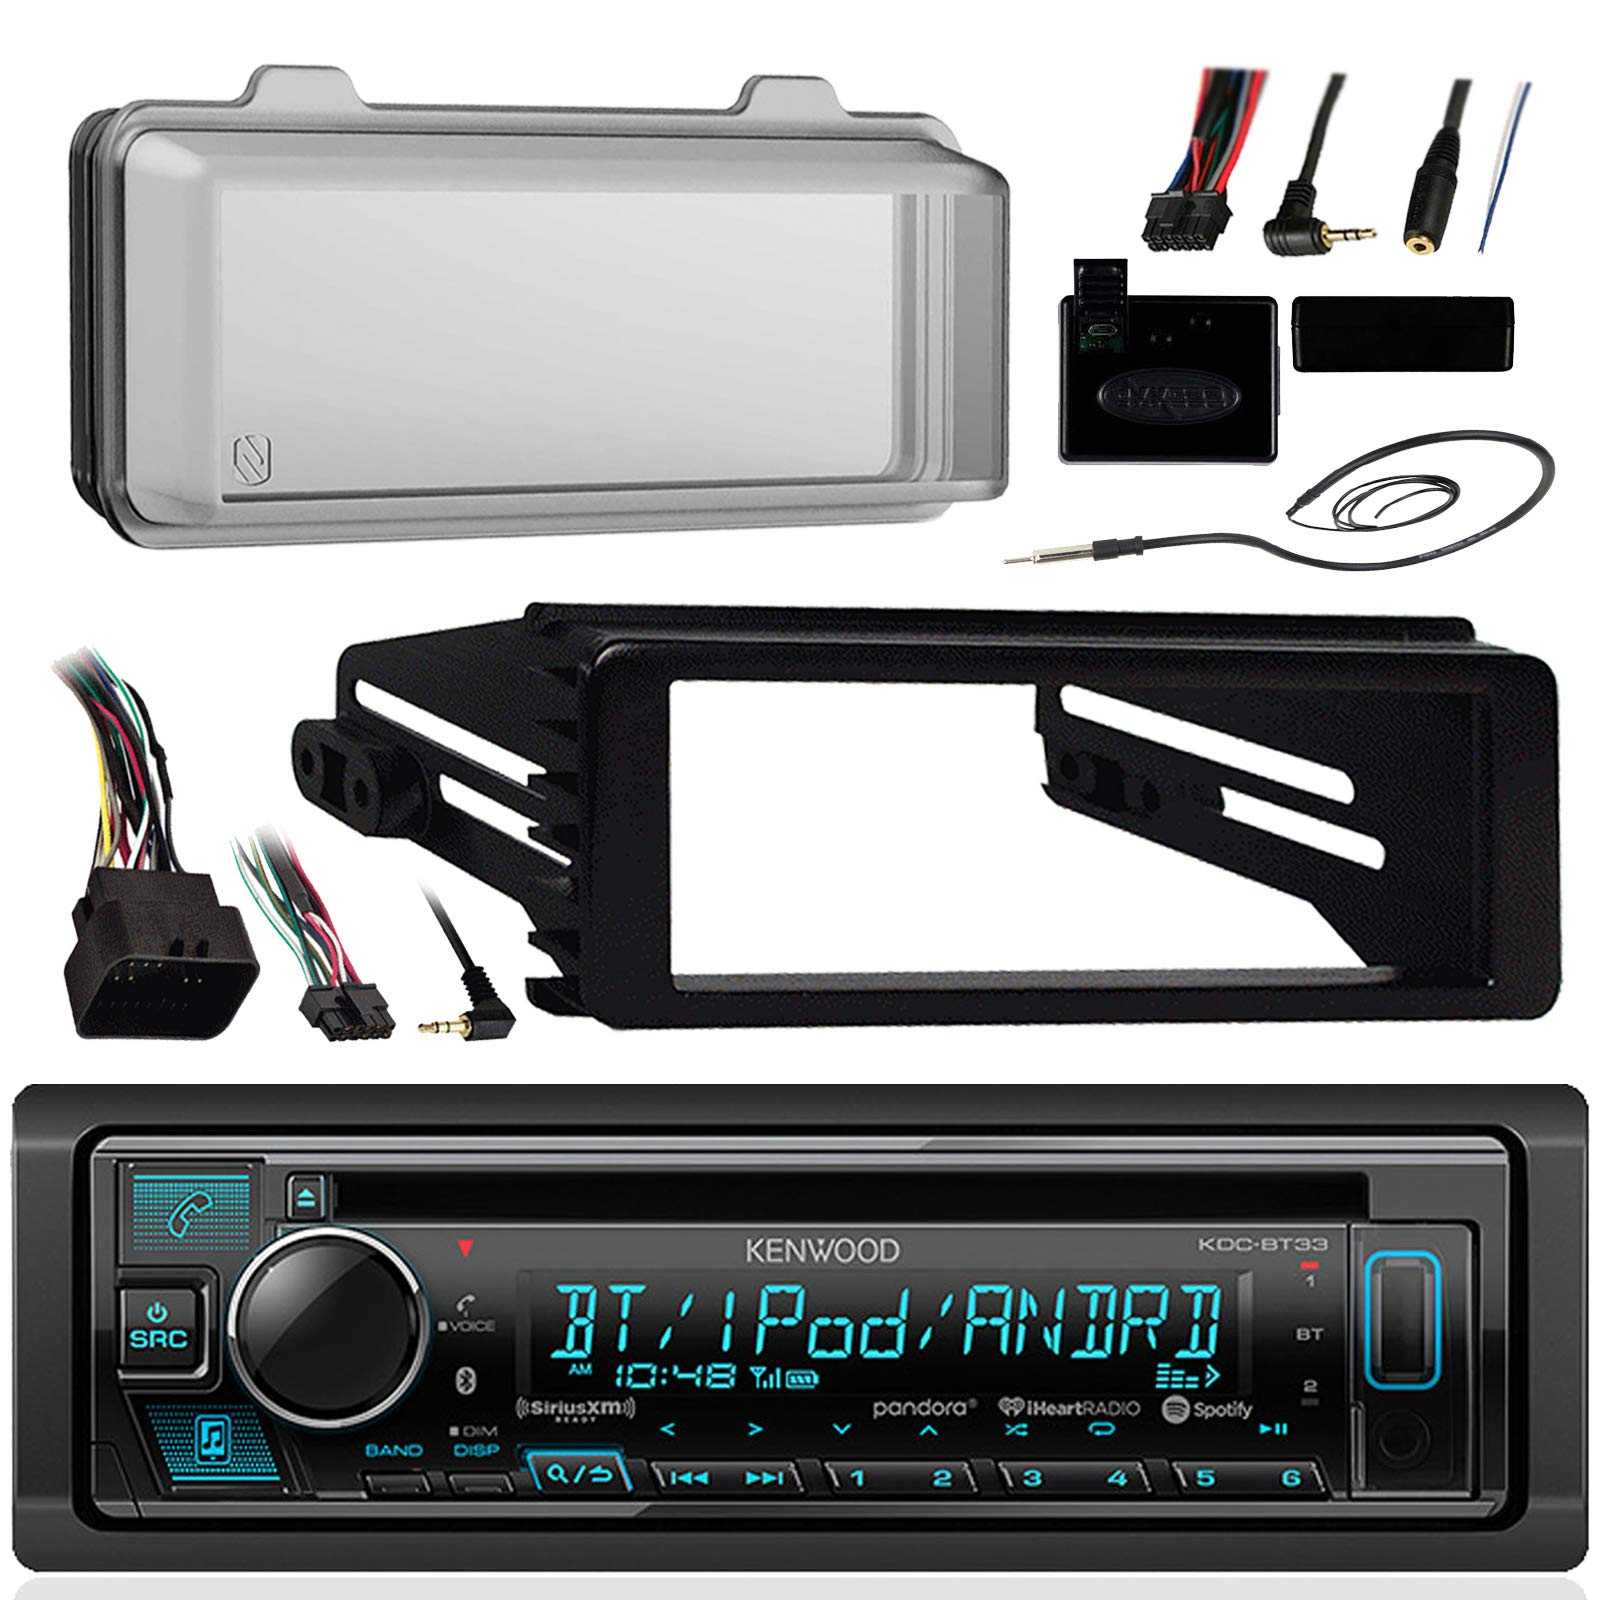 Kenwood Bluetooth Radio USB AUX CD Player Receiver w/ Cover - Bundle with Install Dash Kit, Handle Bar Control, Enrock Antenna for 98- 2013 Harley Touring FLHT FLHX FLHTC Motorcycle Bike by Enrock Motorcycle Bundle